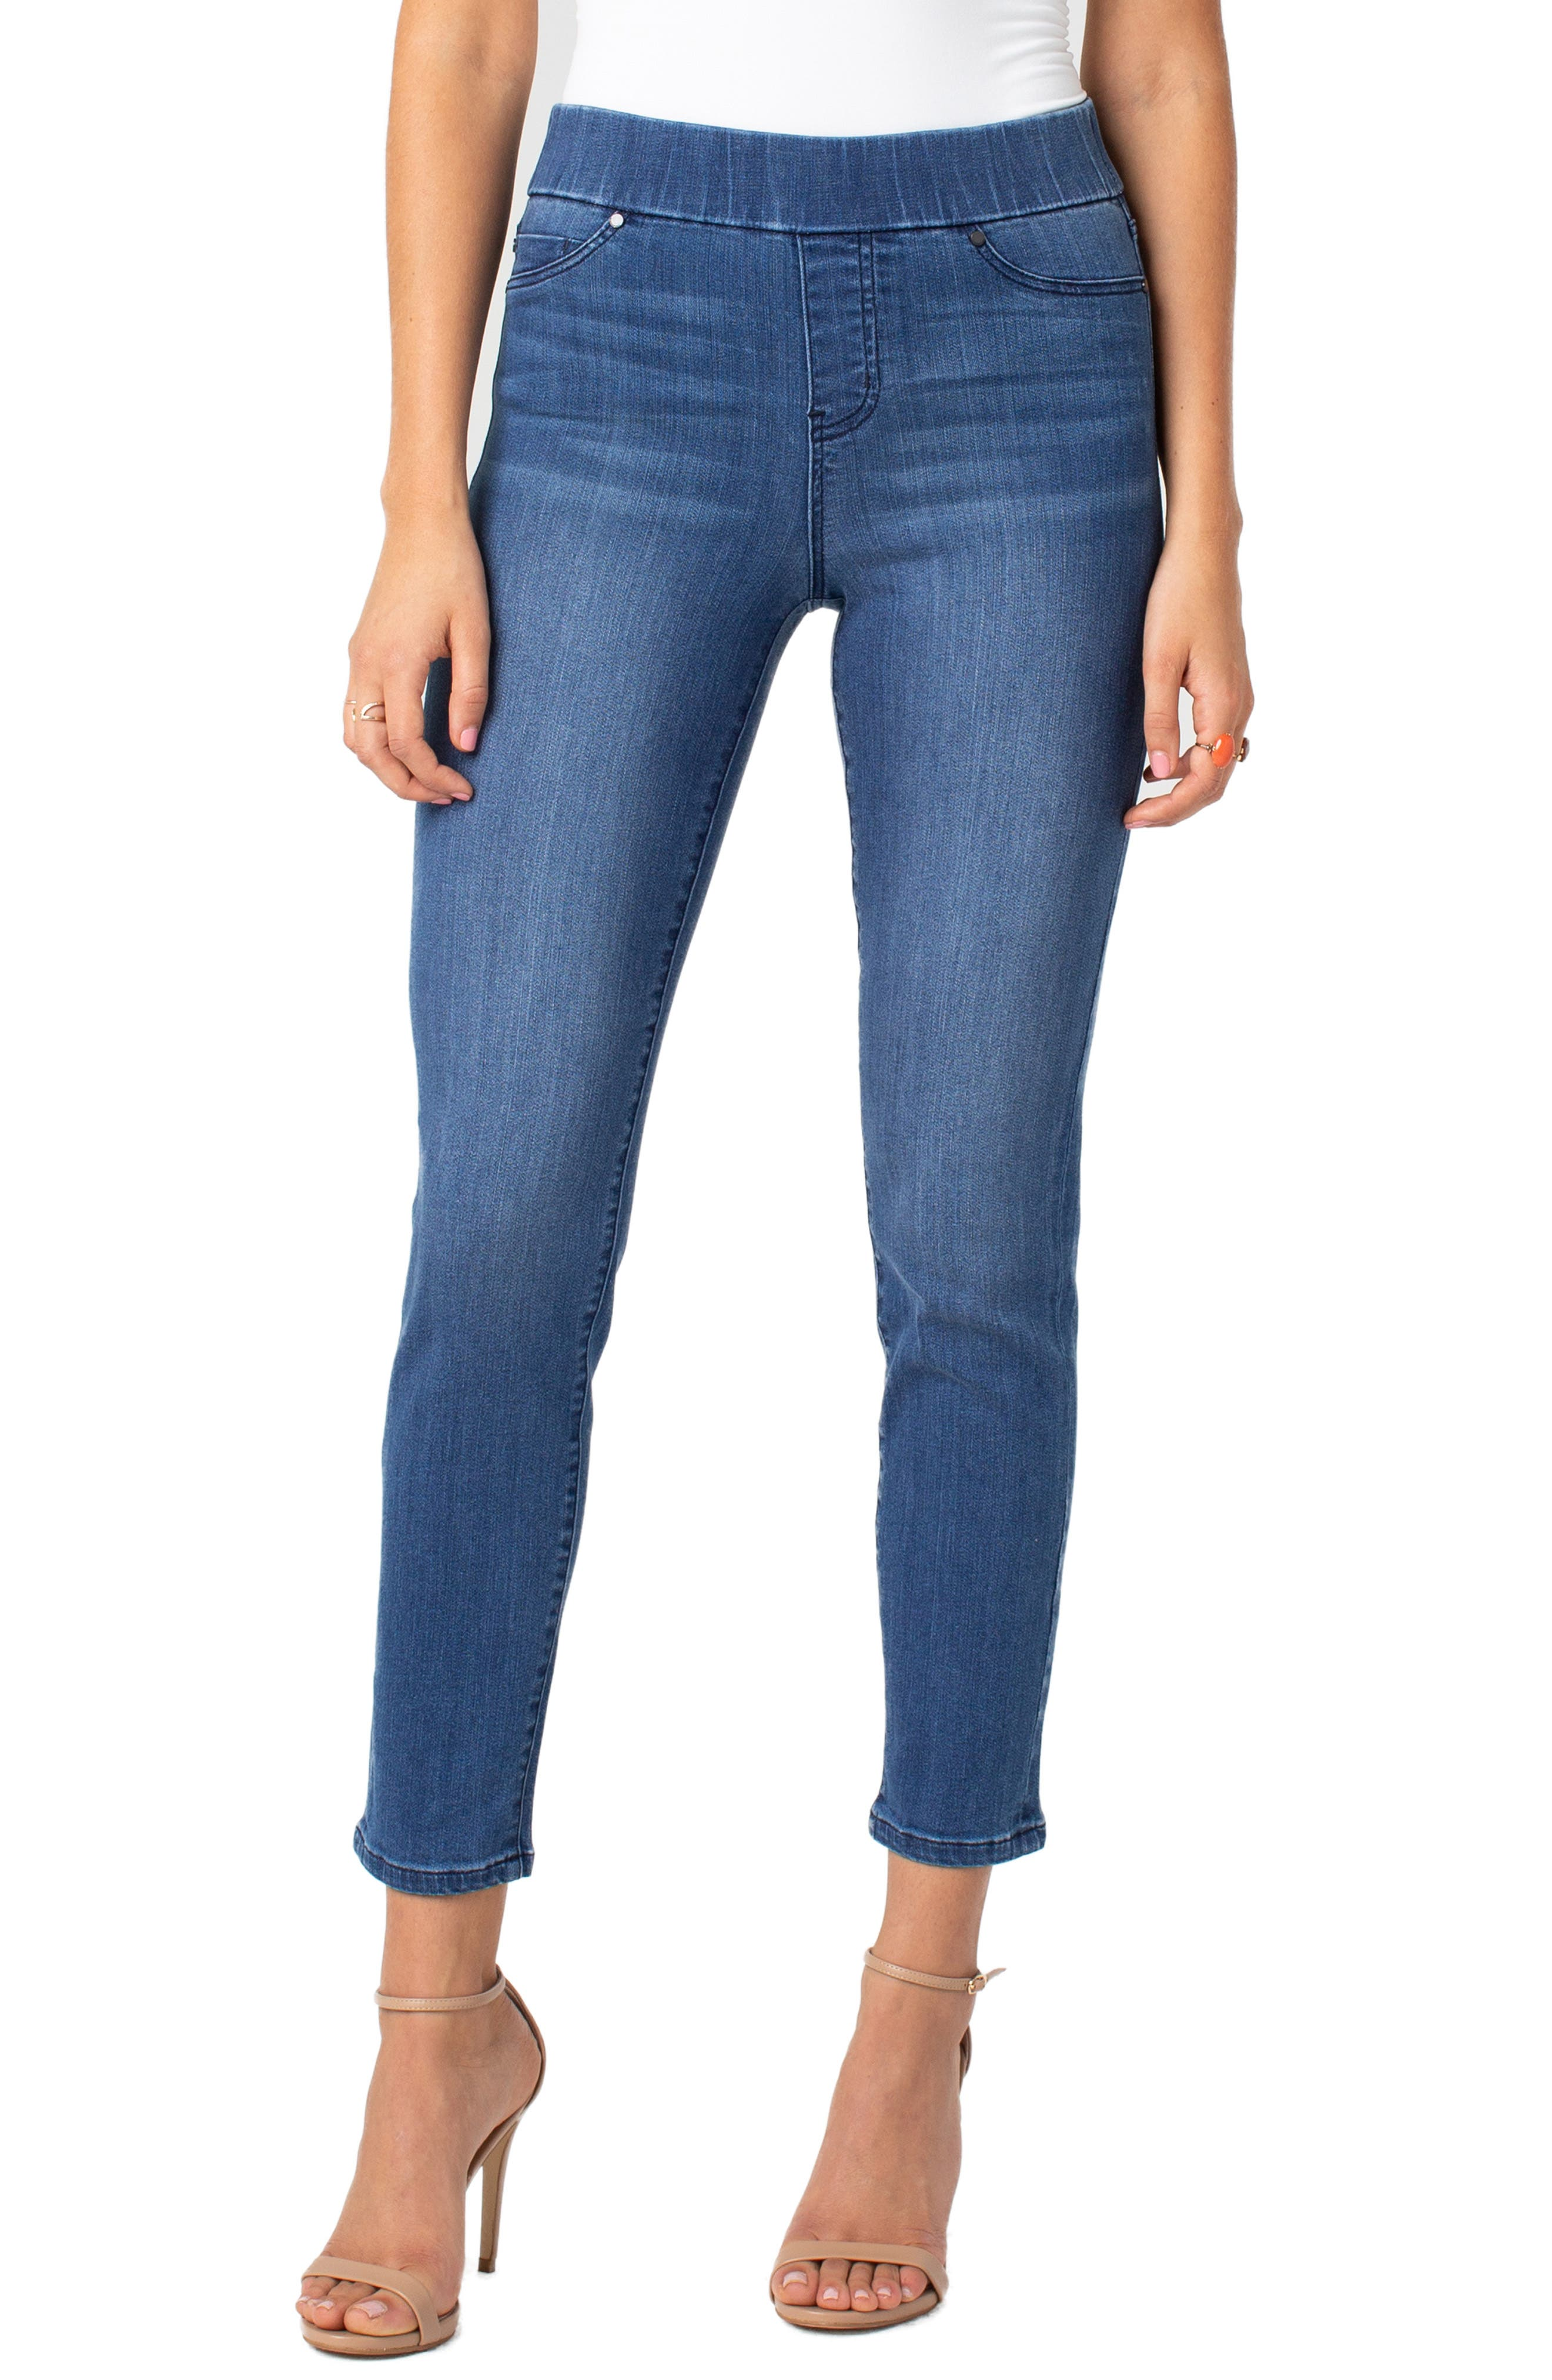 Jeans Company Meridith Pull-On Slim Ankle Jeans,                             Main thumbnail 1, color,                             HARLOW